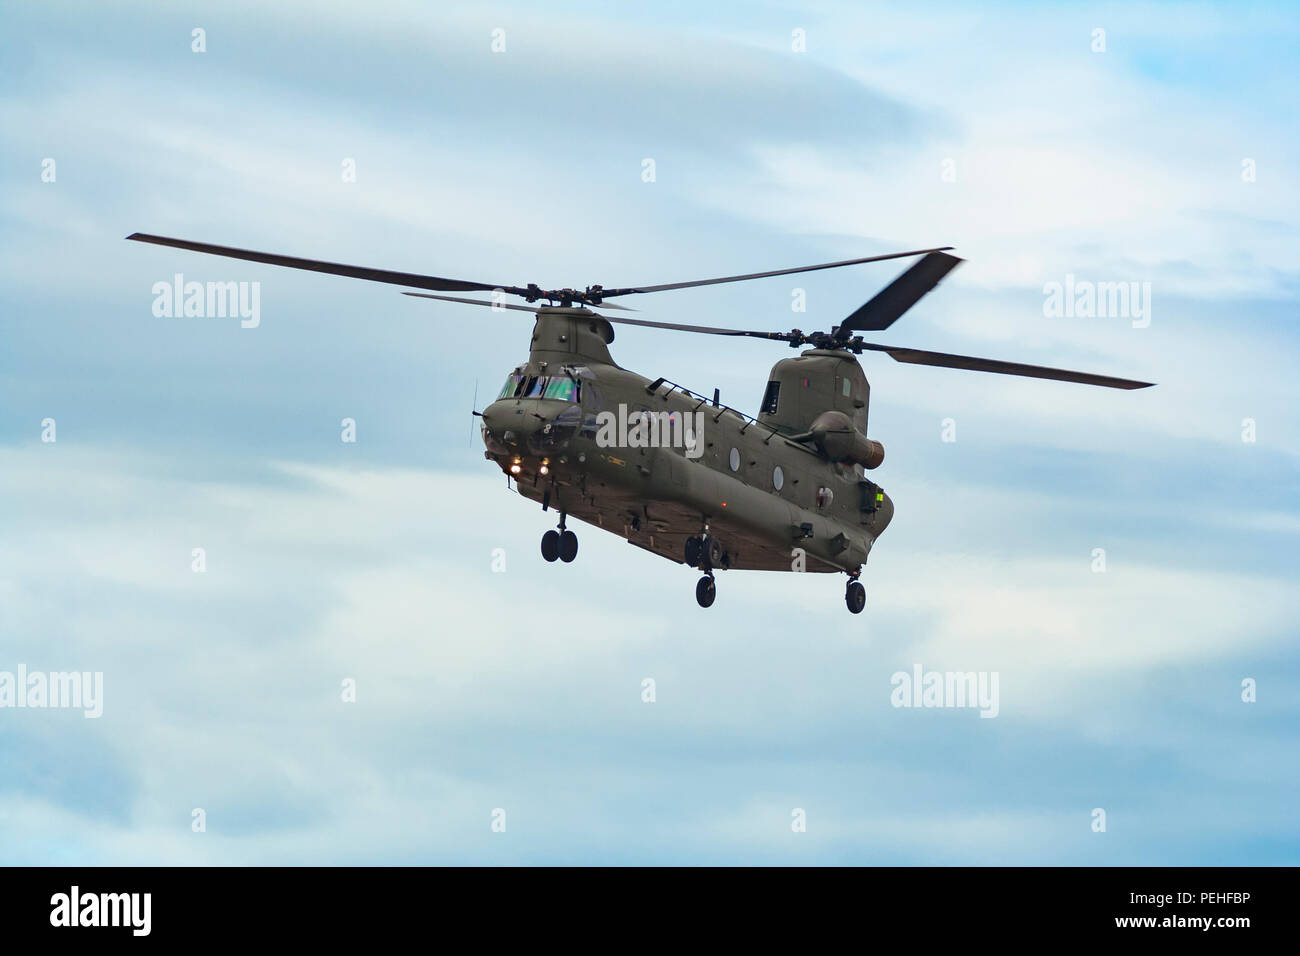 Royal Air Force Boeing CH-47 Chinook on display at Southport Air Show - Stock Image